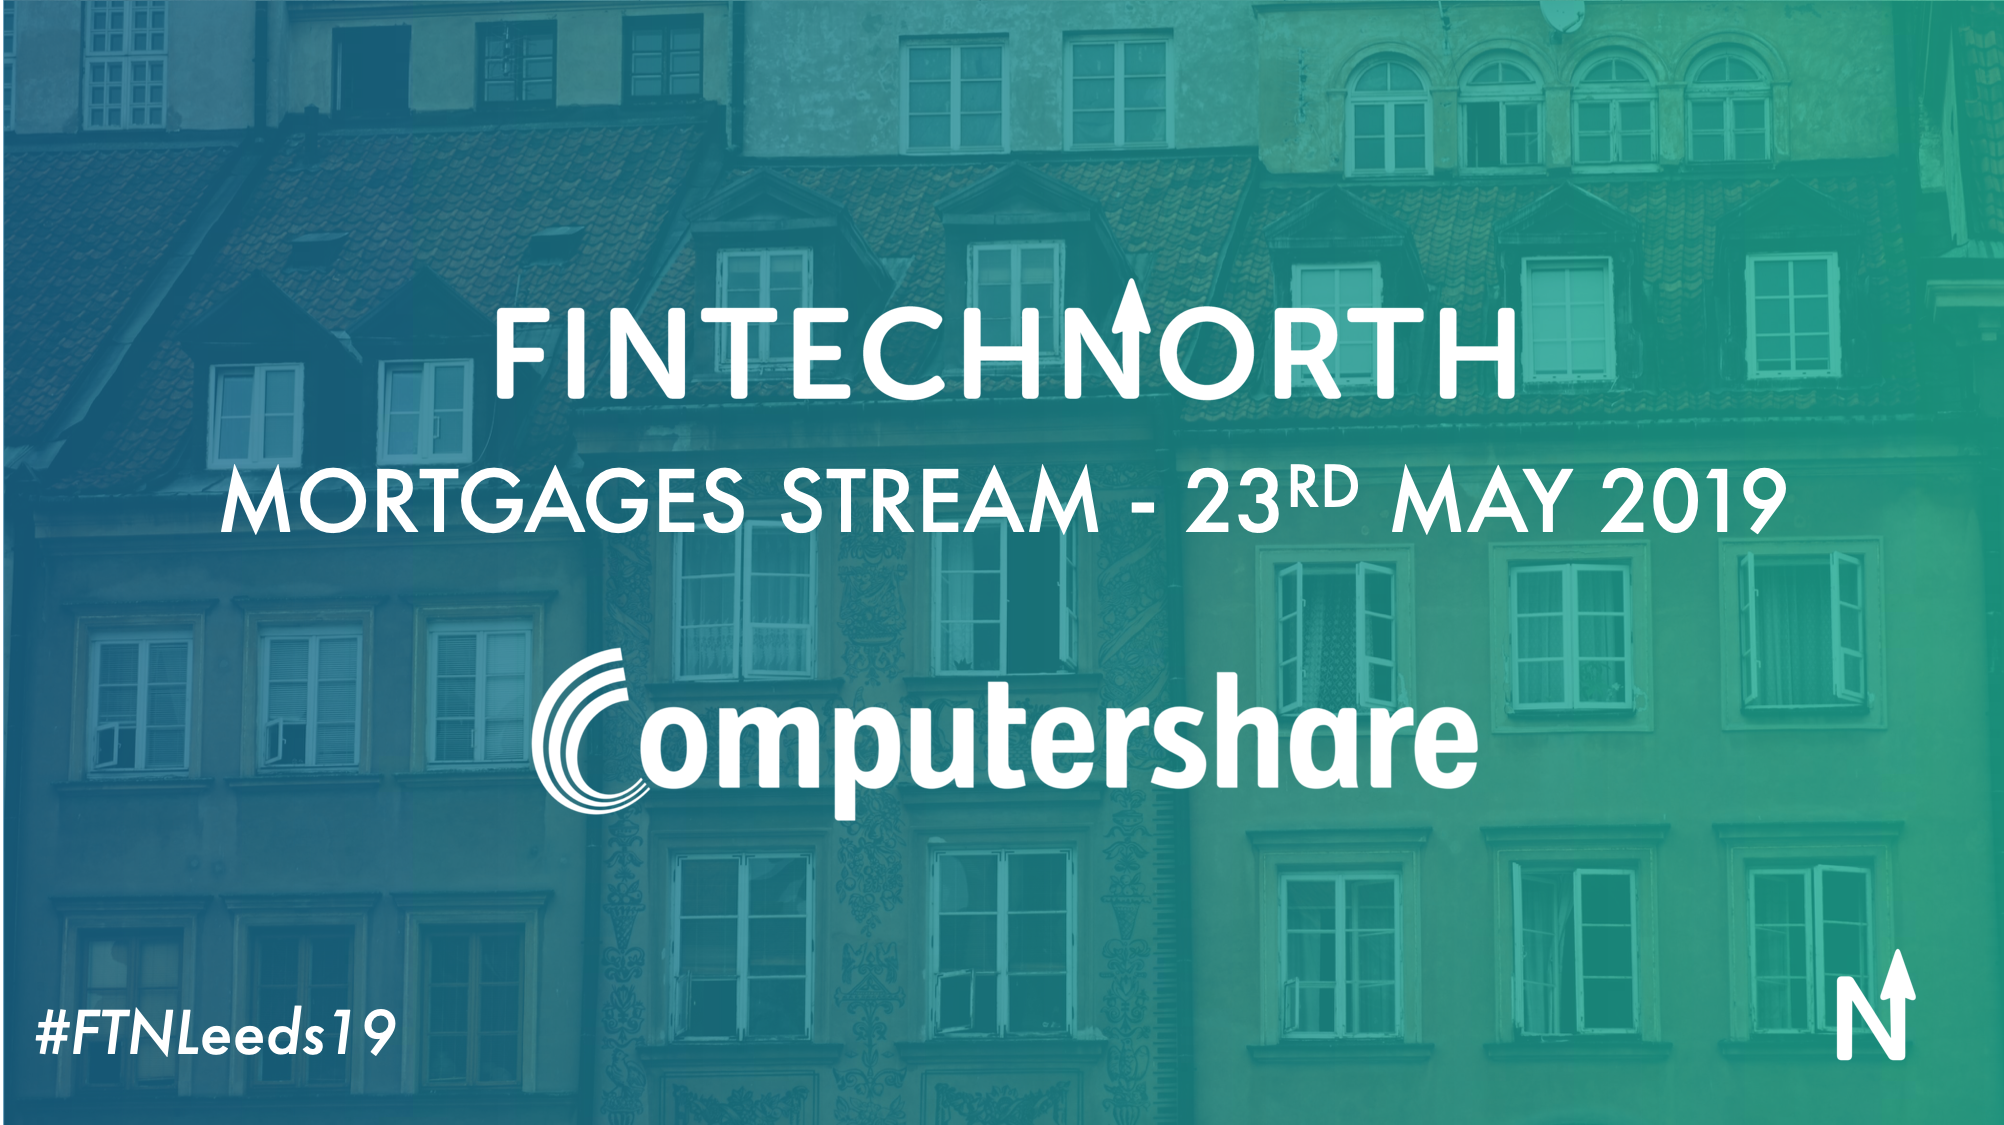 COMPUTERSHARE TO HOST MORTGAGE TECH STREAM AT FINTECH NORTH LEEDS